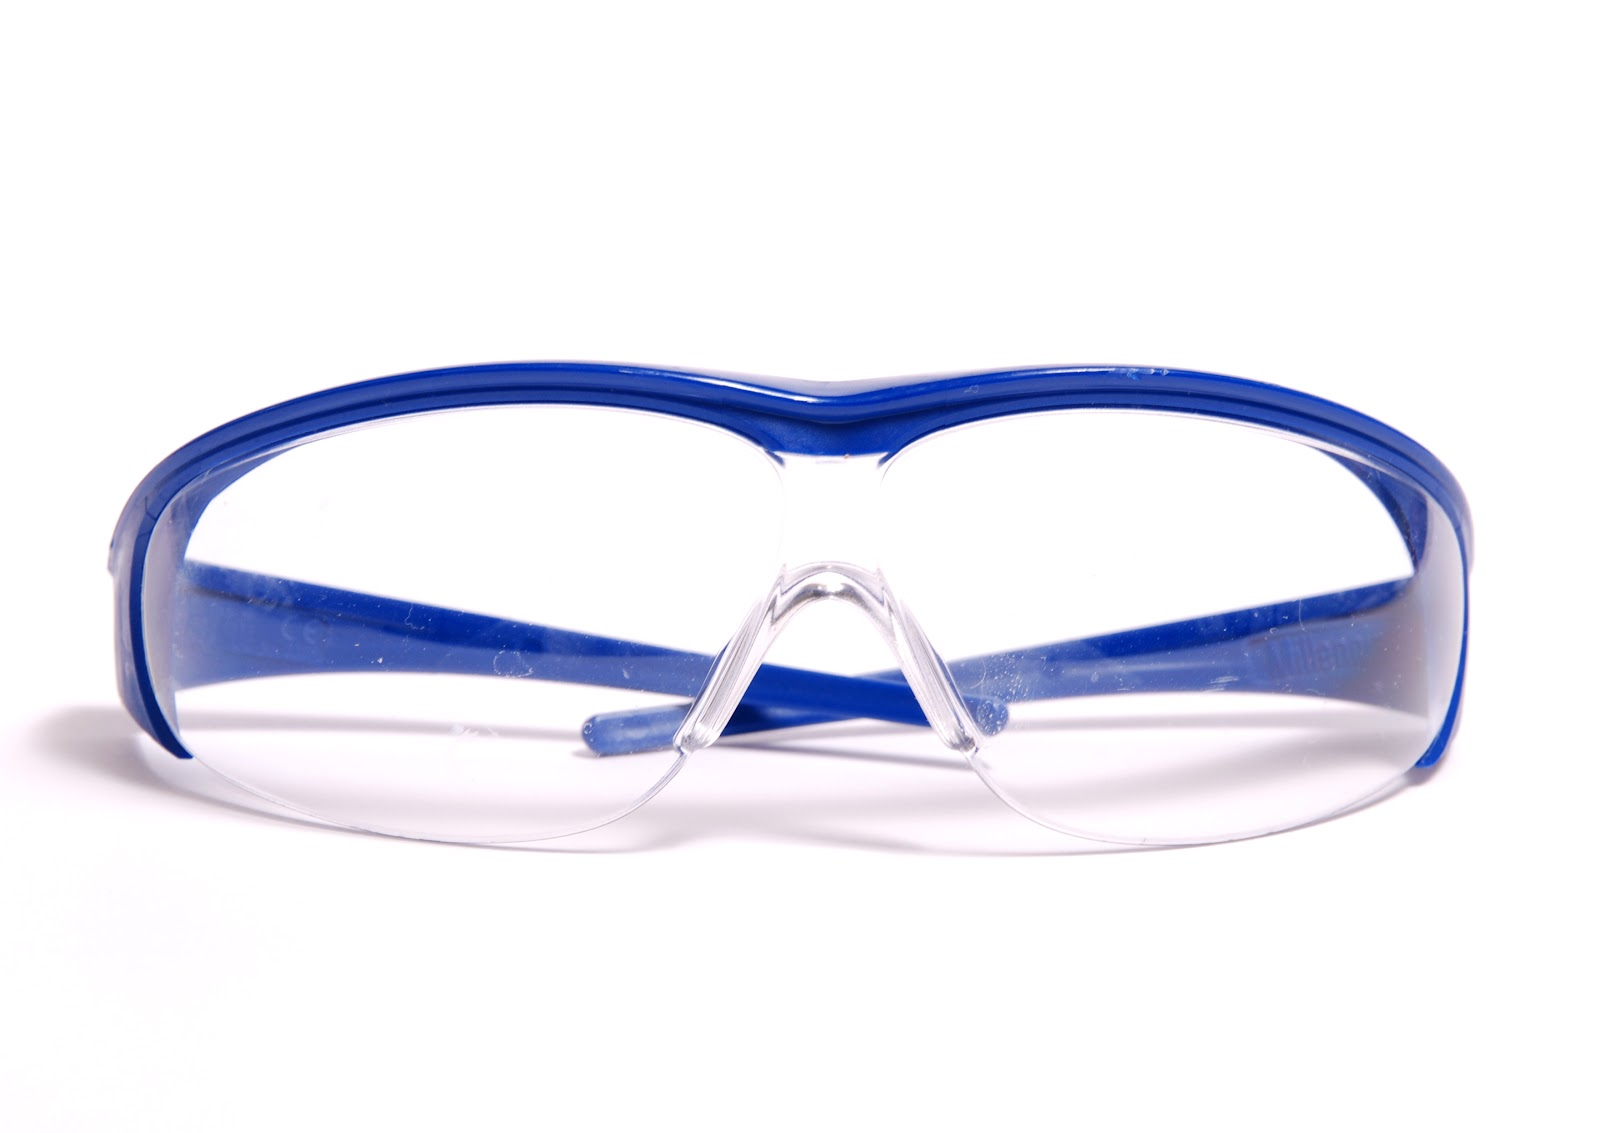 Laboratory_protection_goggles-blue.jpg